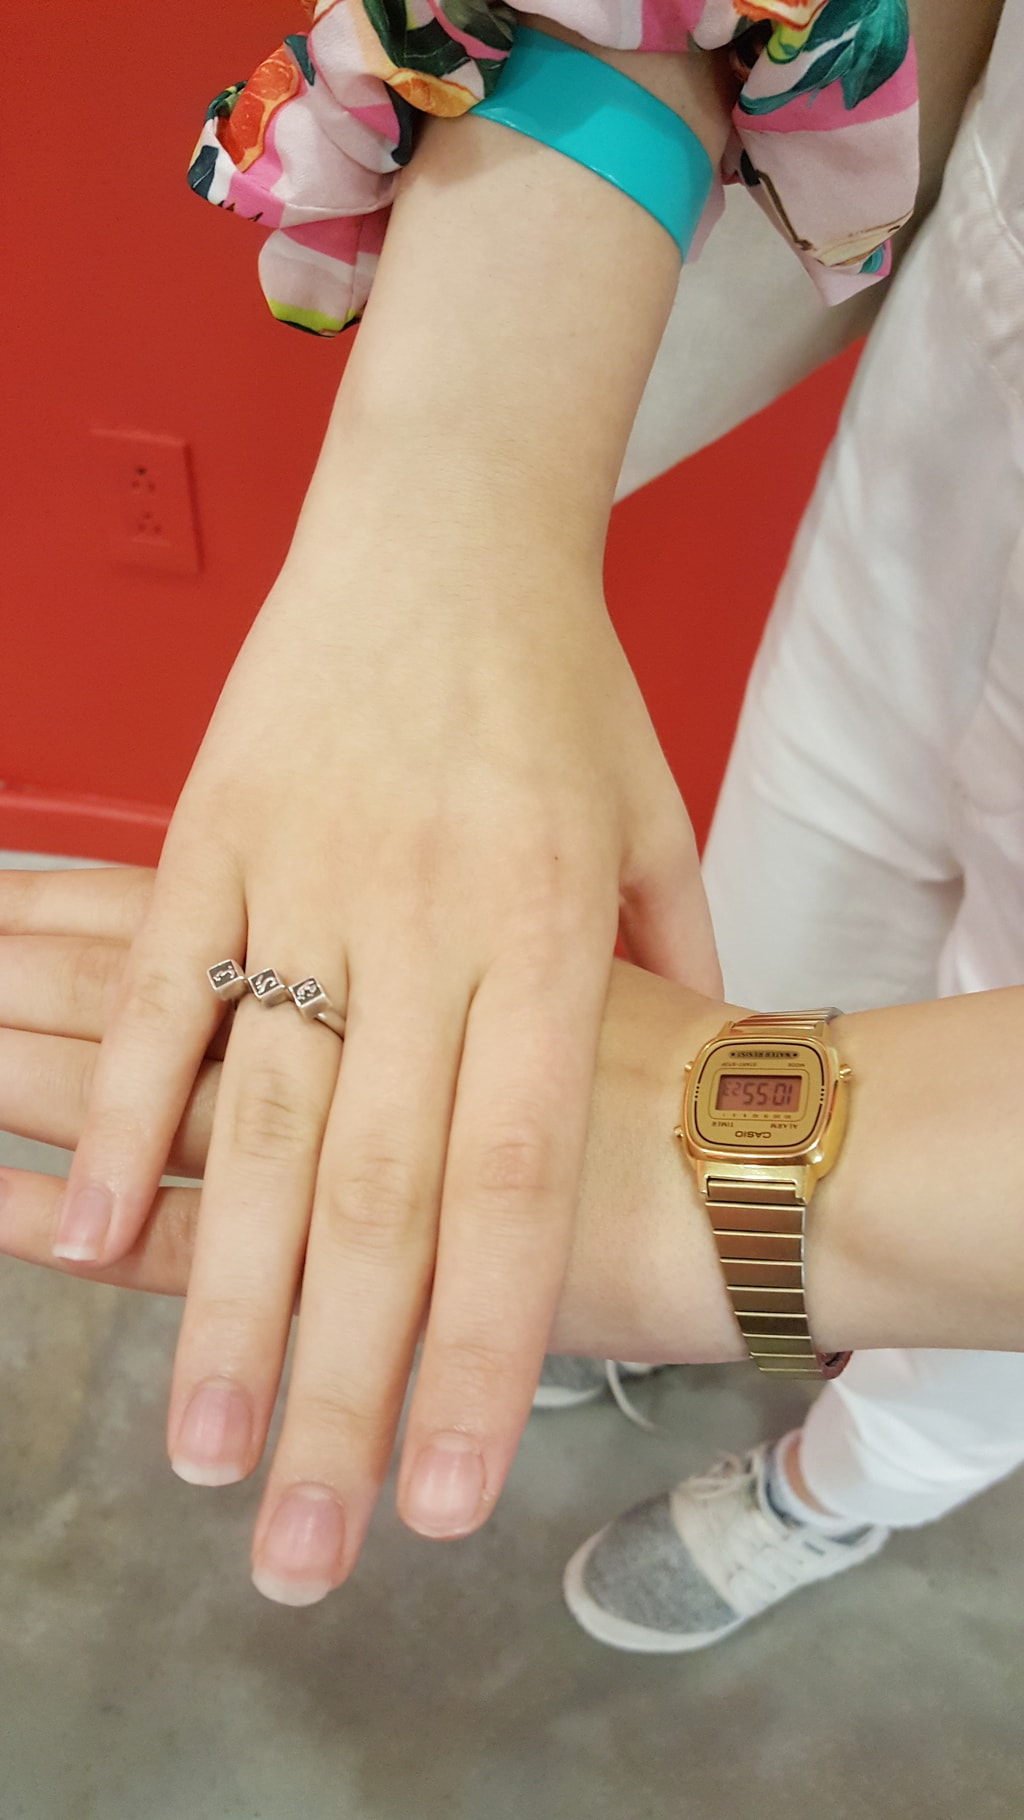 Simple gold details: a vintage gold analog watch and a delicate gold ring with three square black jewels.